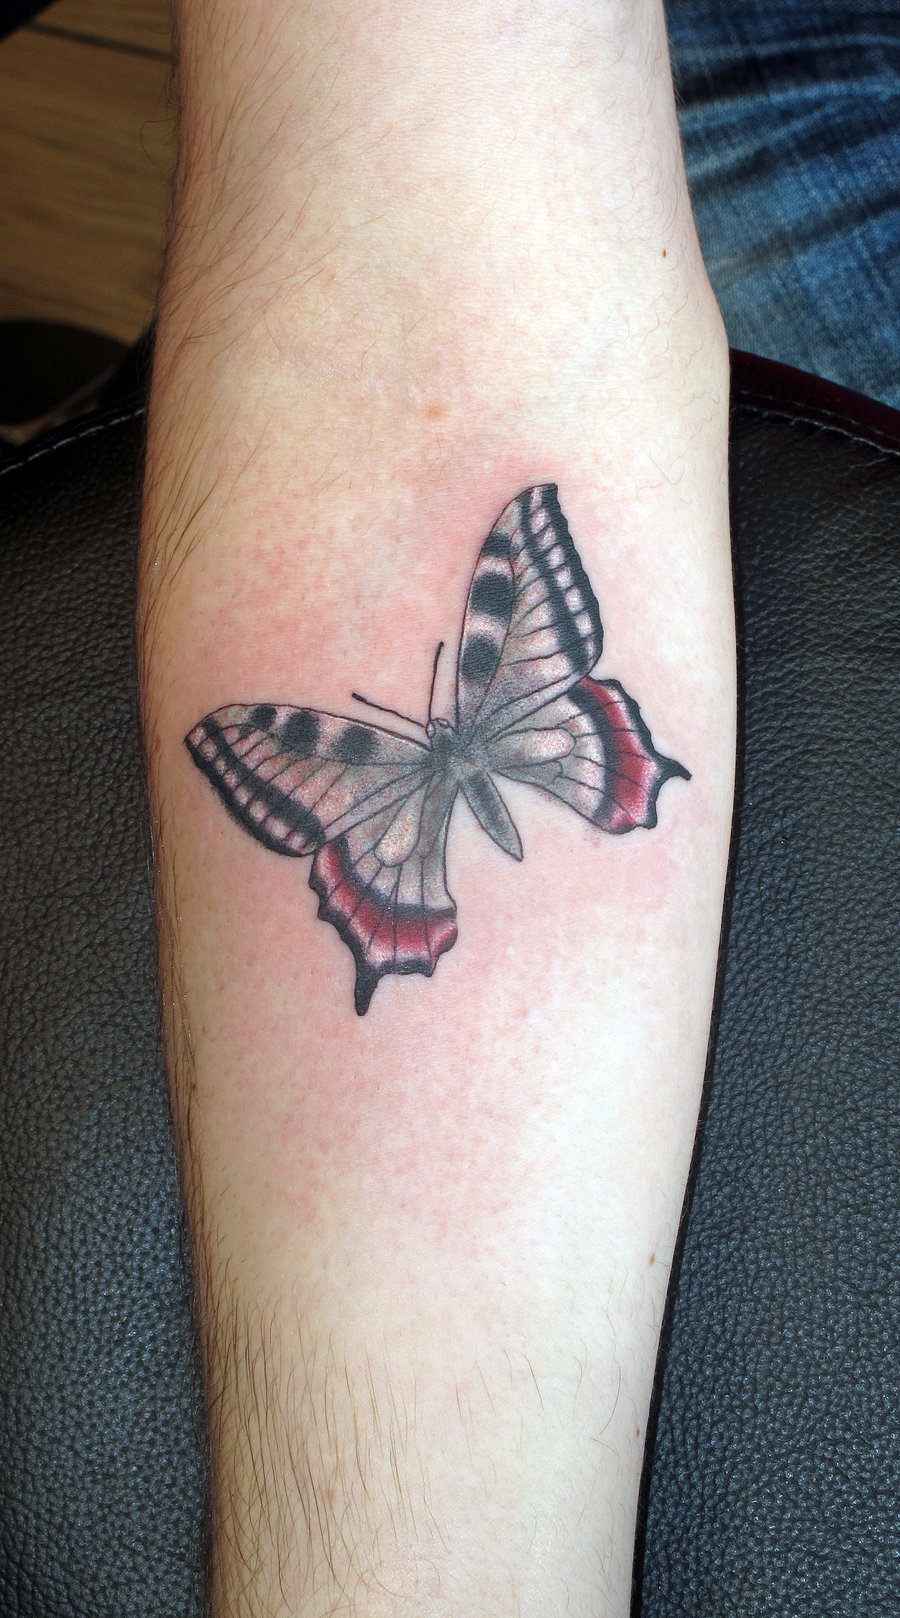 Symbolism of a butterfly landing on you images symbol and sign ideas 60 best butterfly tattoos meanings ideas and designs 2018 butterfly tattoo with vibrant colors buycottarizona buycottarizona